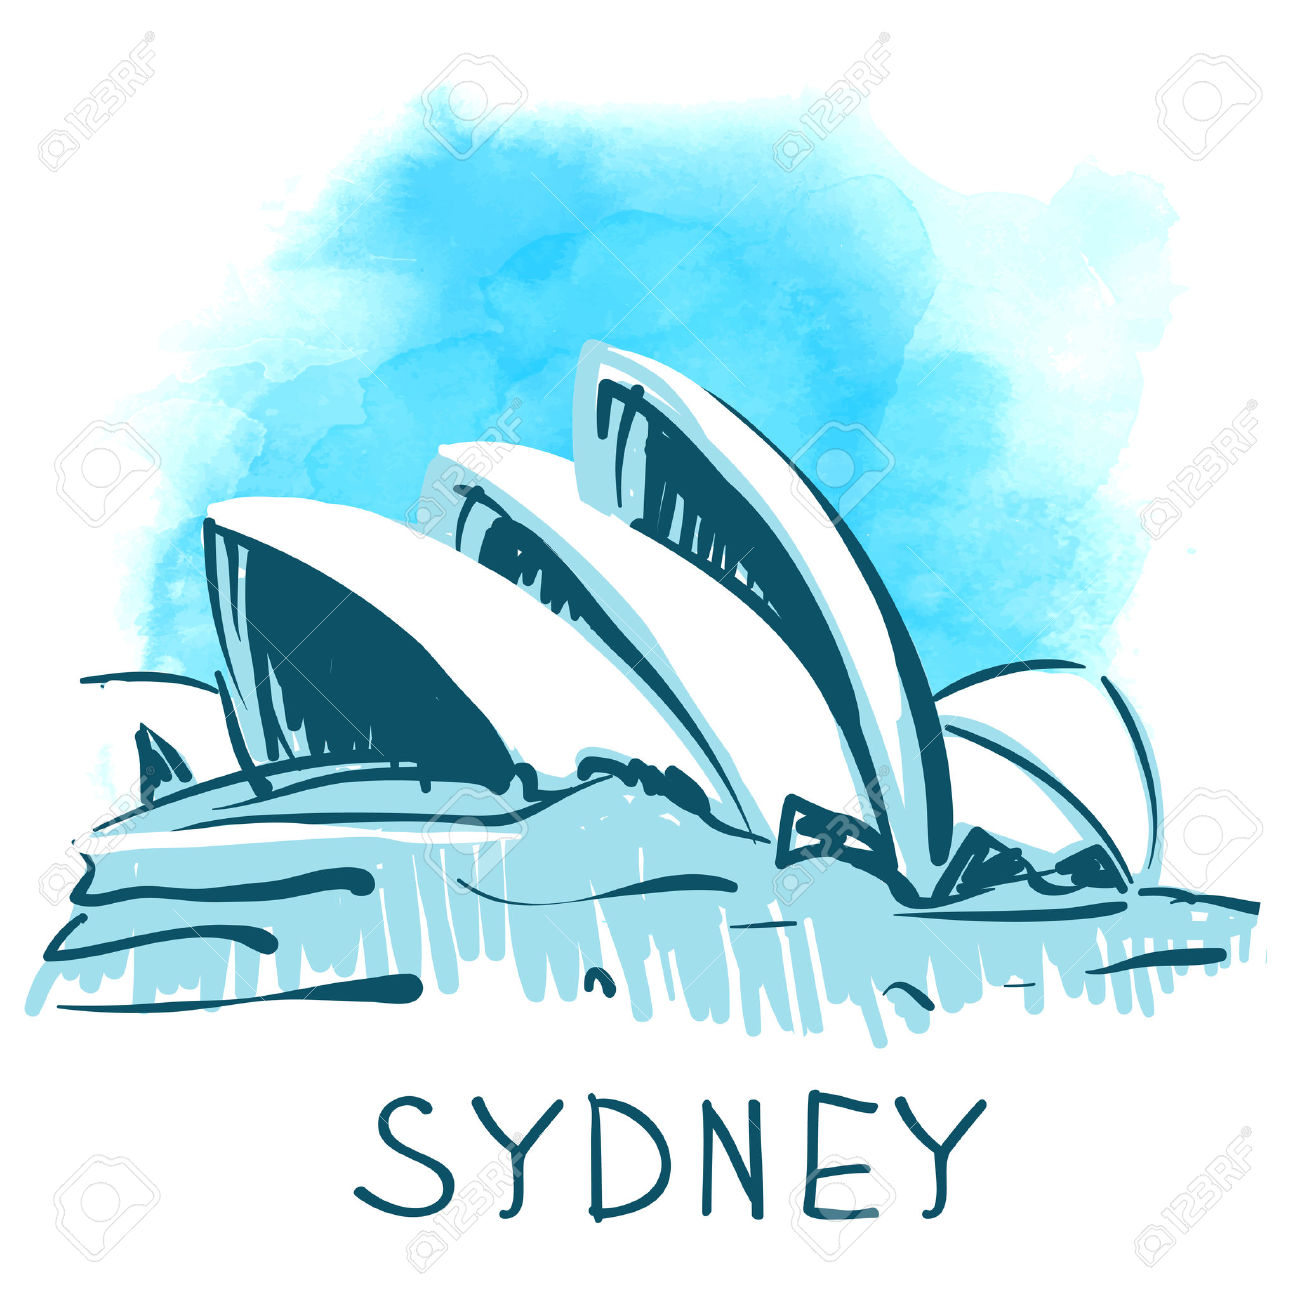 Sydney clipart #1, Download drawings